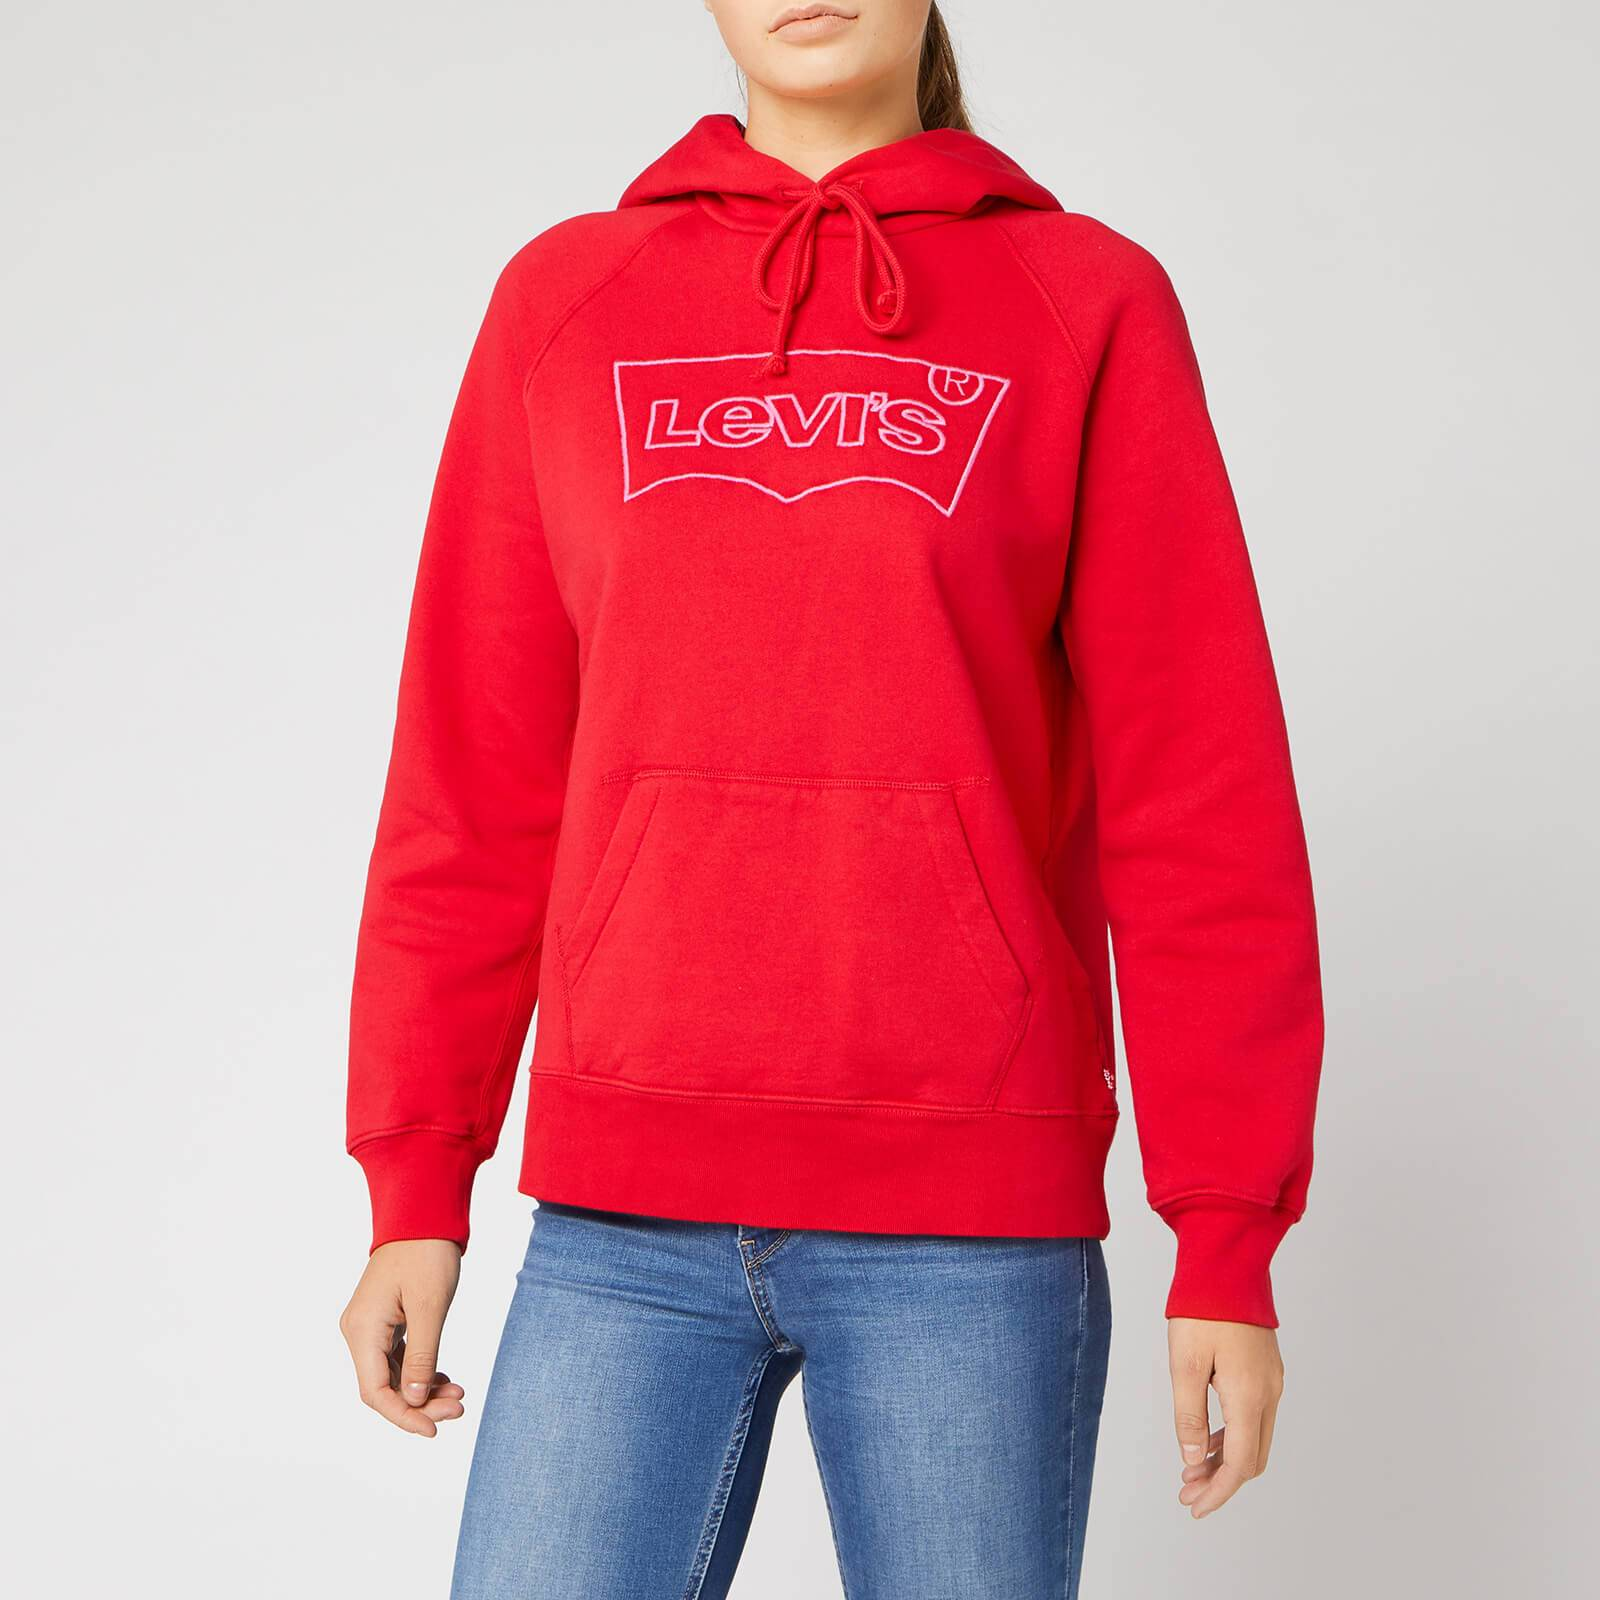 Levi's s Graphic Sport Hoodie - Hsmk Outline Hoodie Brilliant Red - S